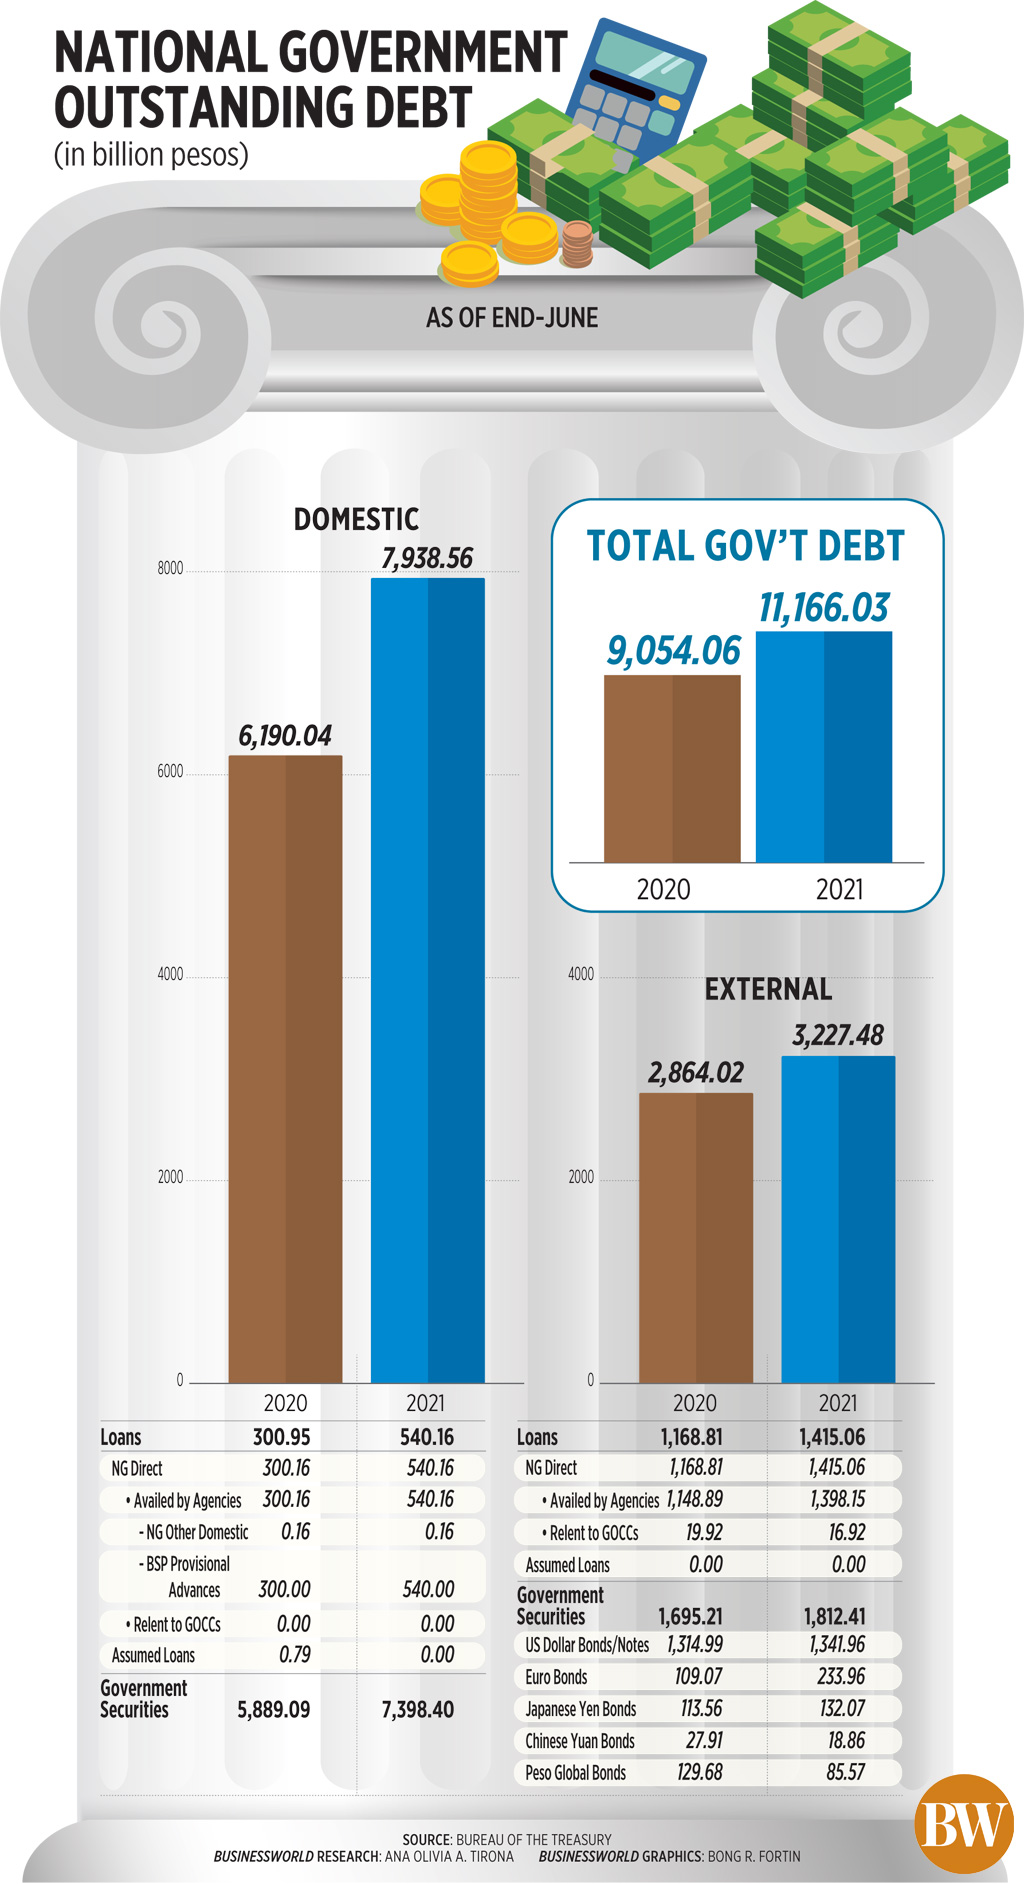 National government outstanding debt